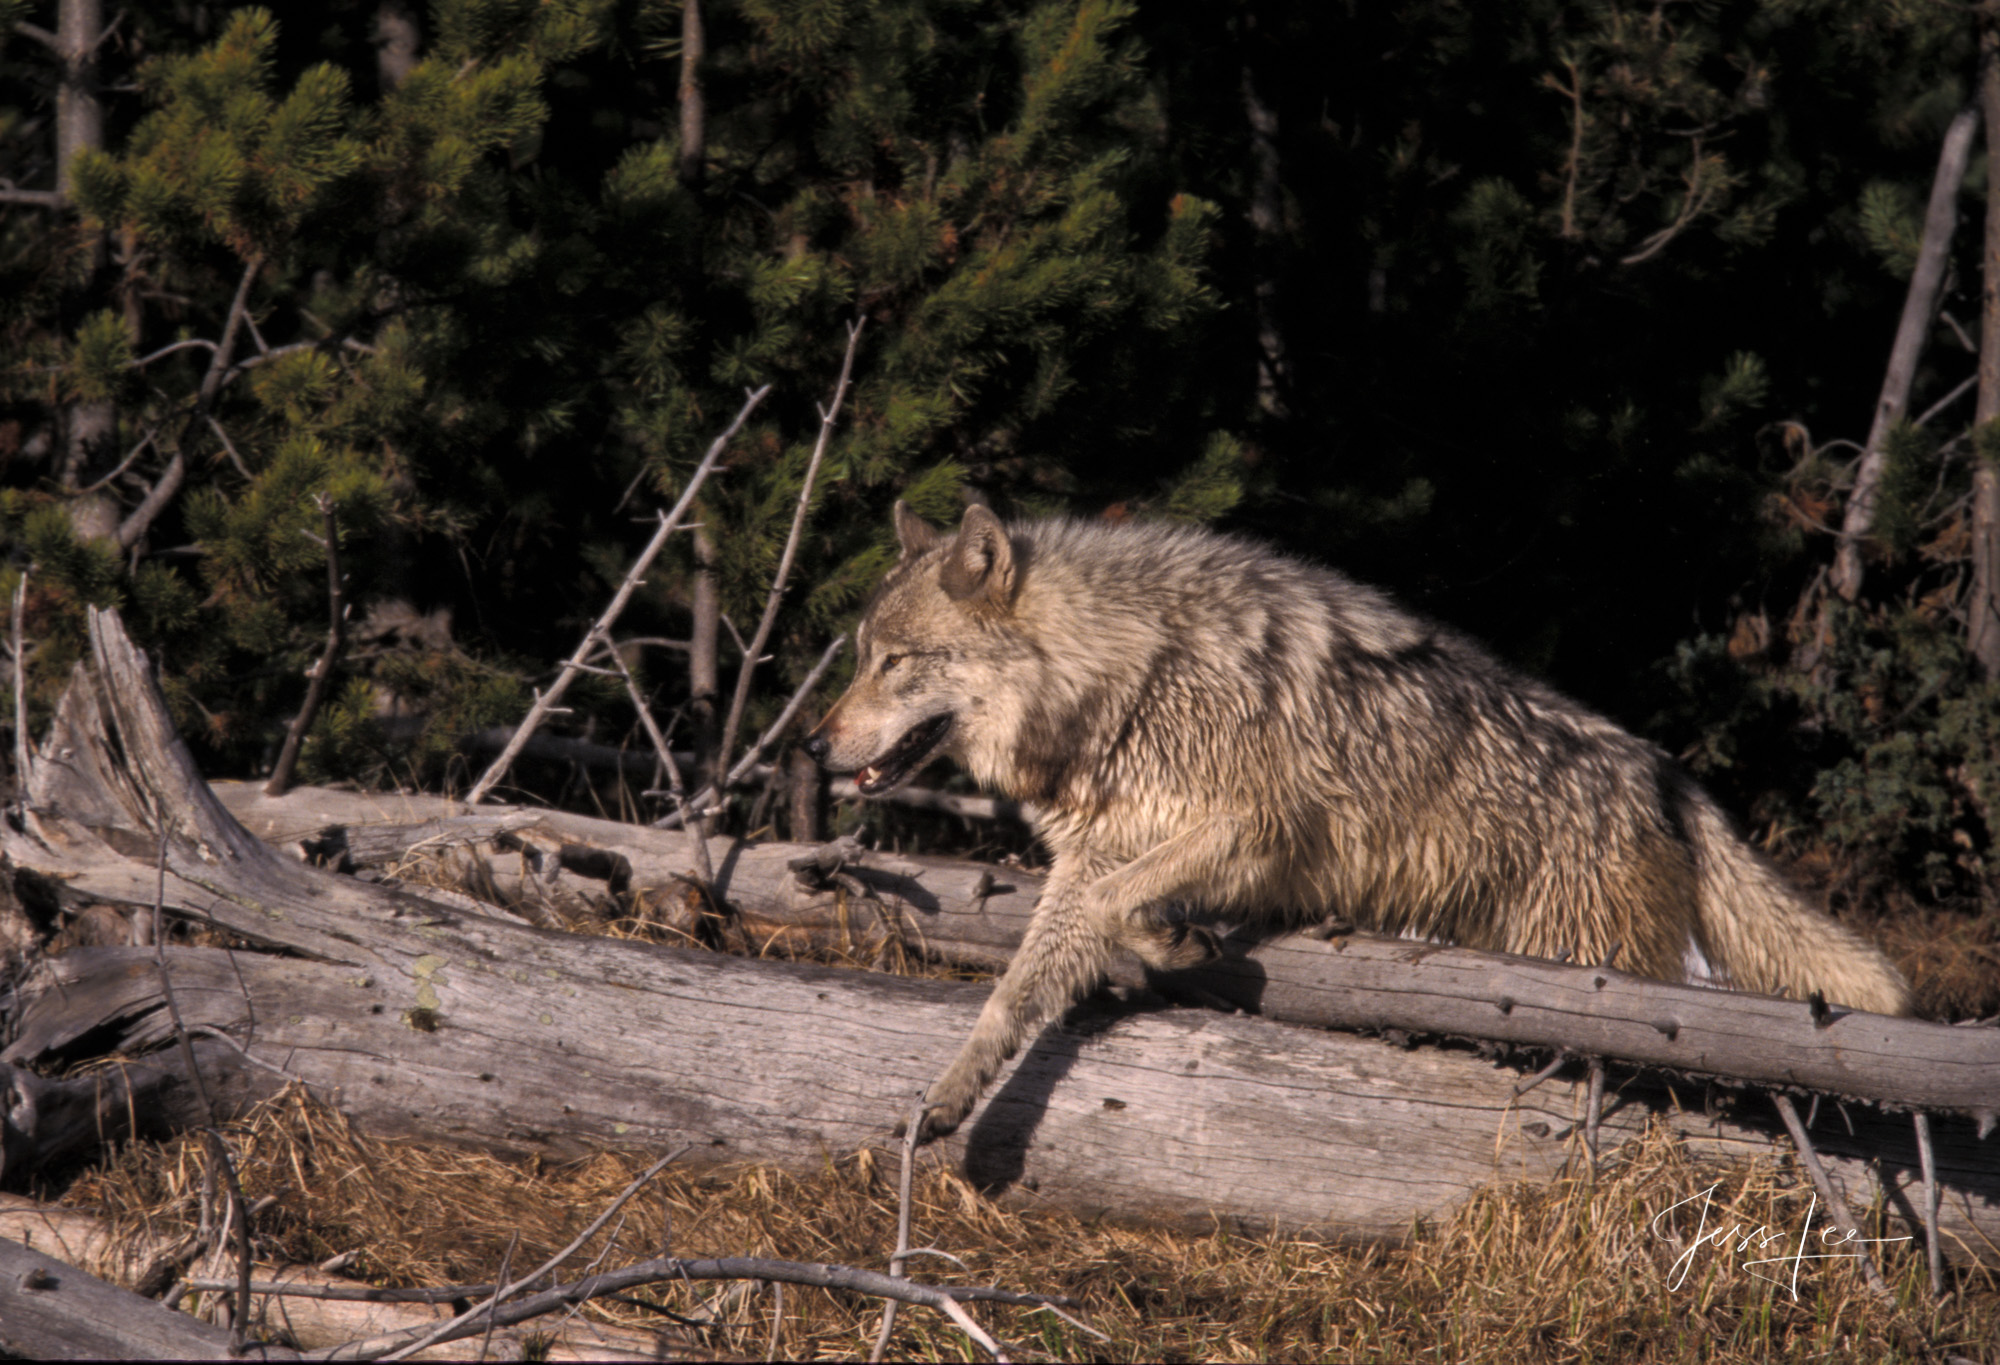 Yellowstone Wolf in the Wild hunting in the lodgepole forest along the Madison River. Exclusive limited edition photo of 200...